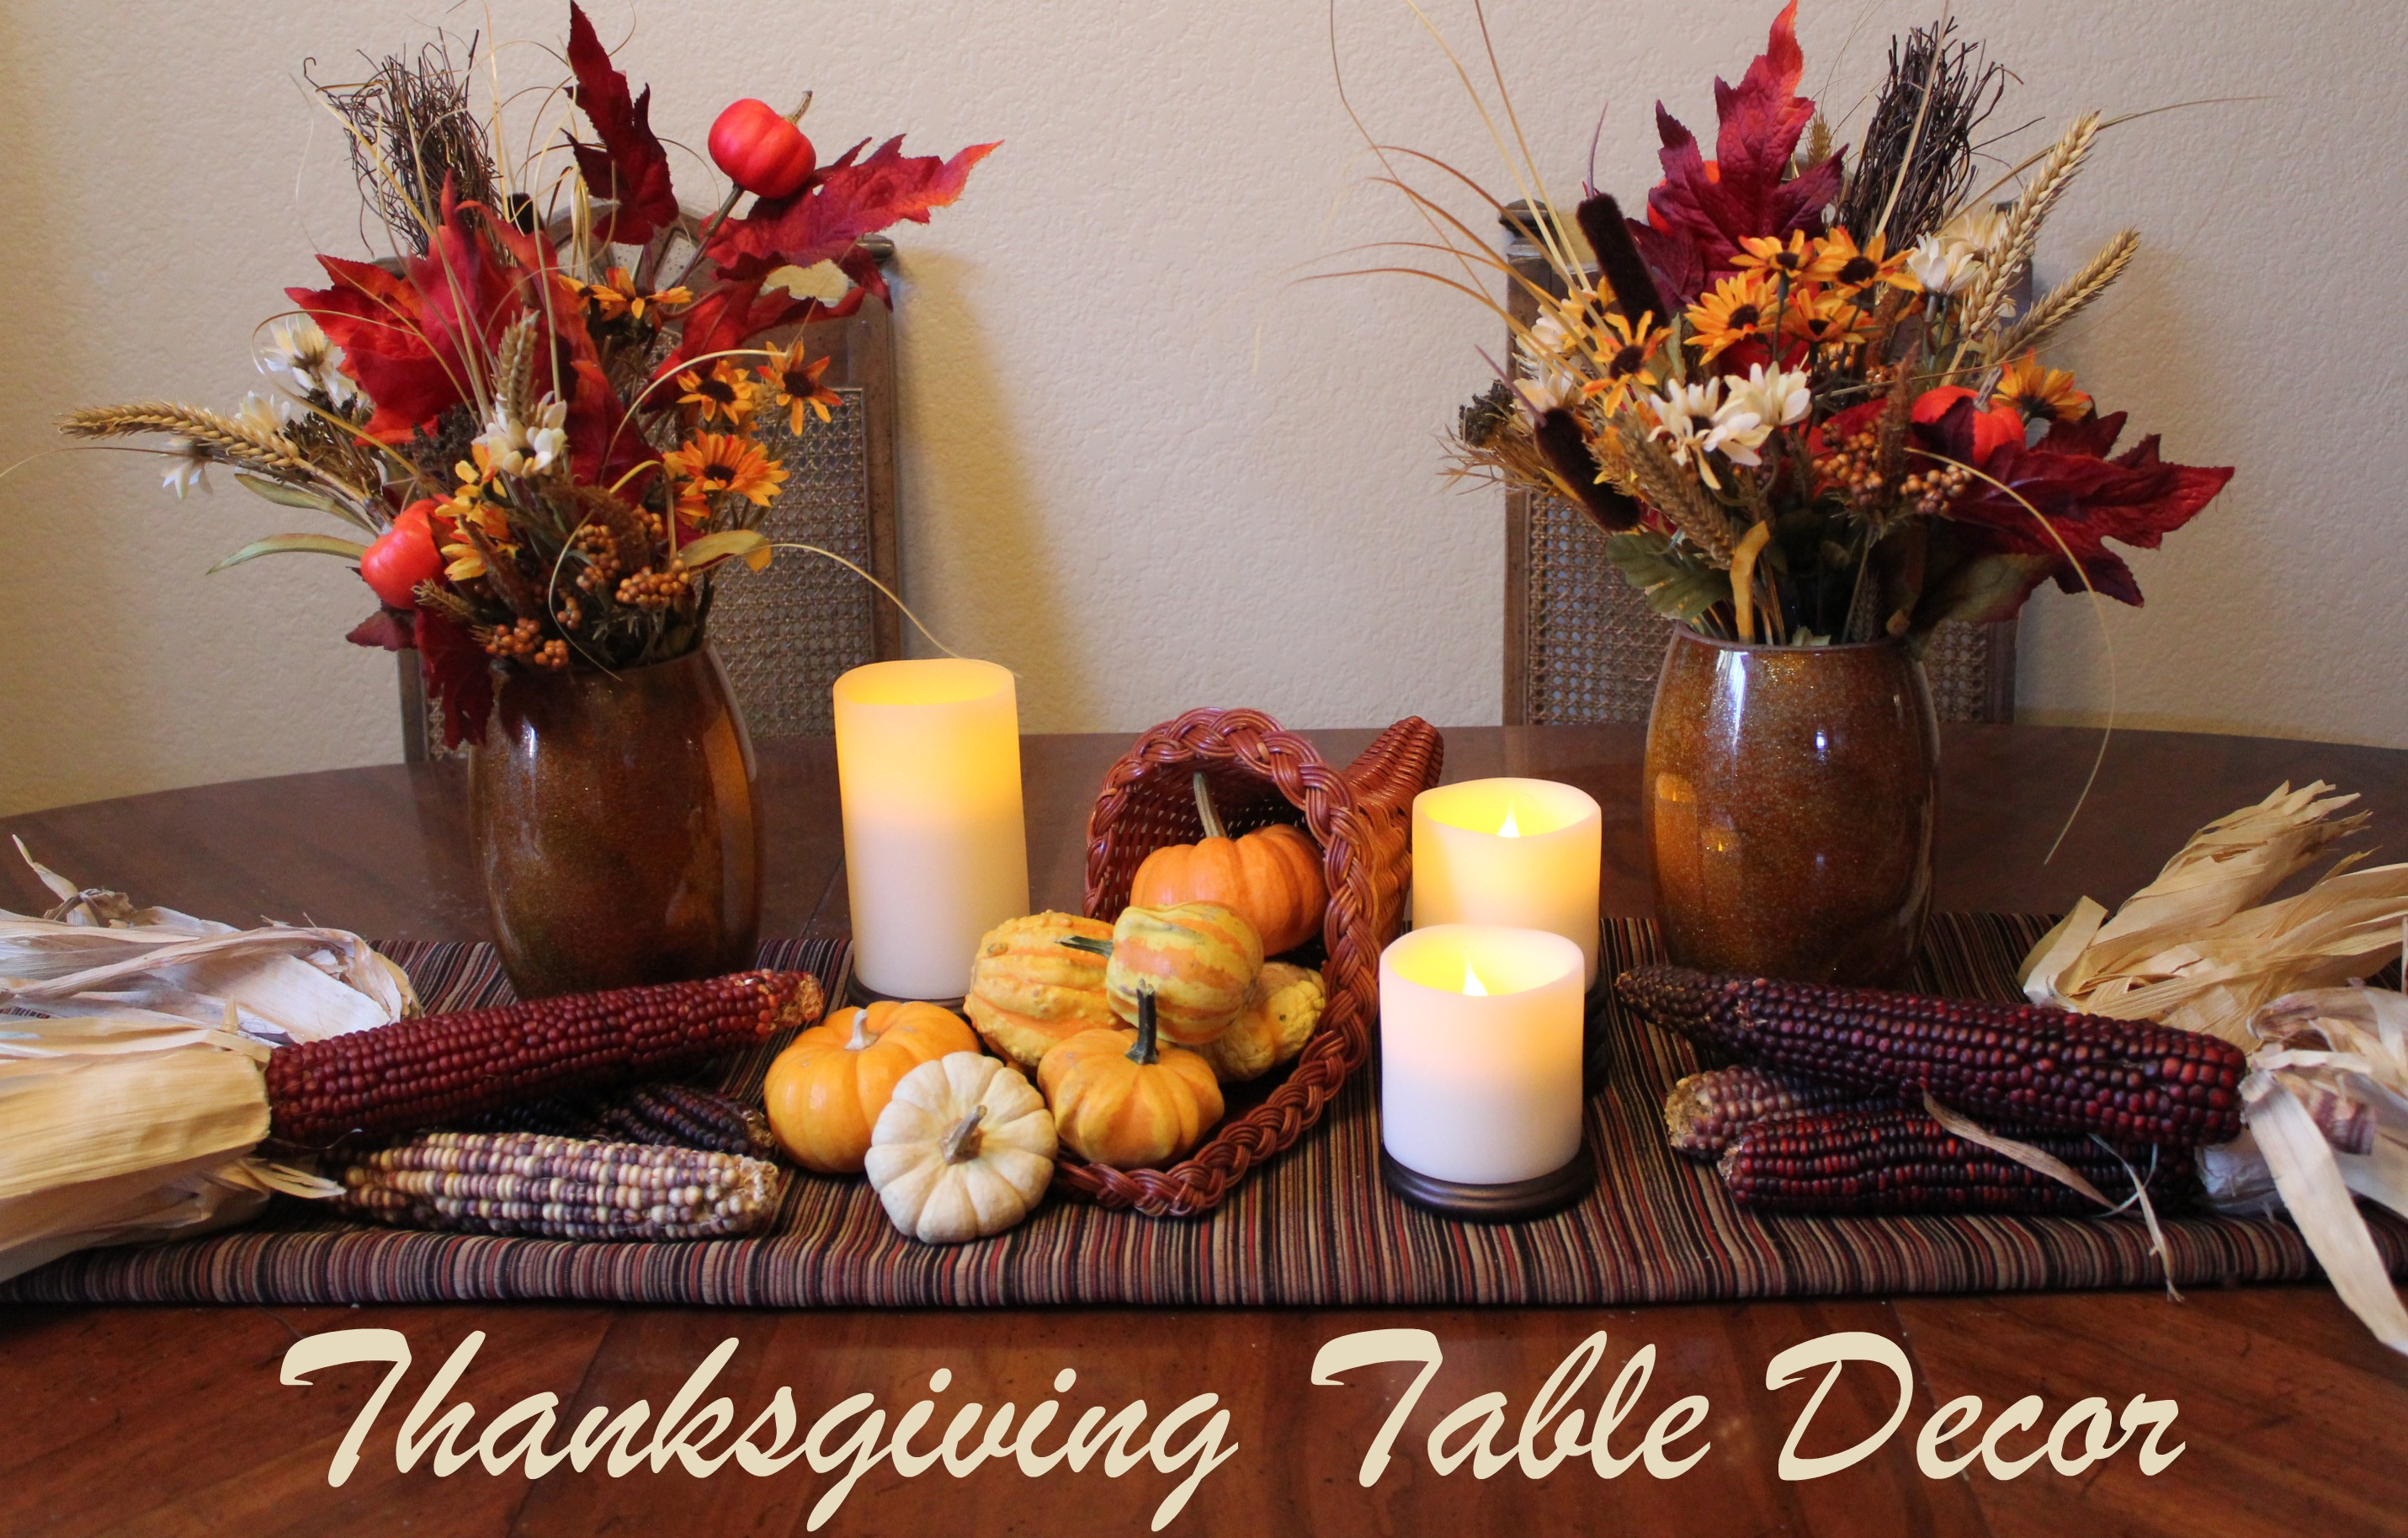 Cornucopia of creativity diy thanksgiving table decor Thanksgiving table